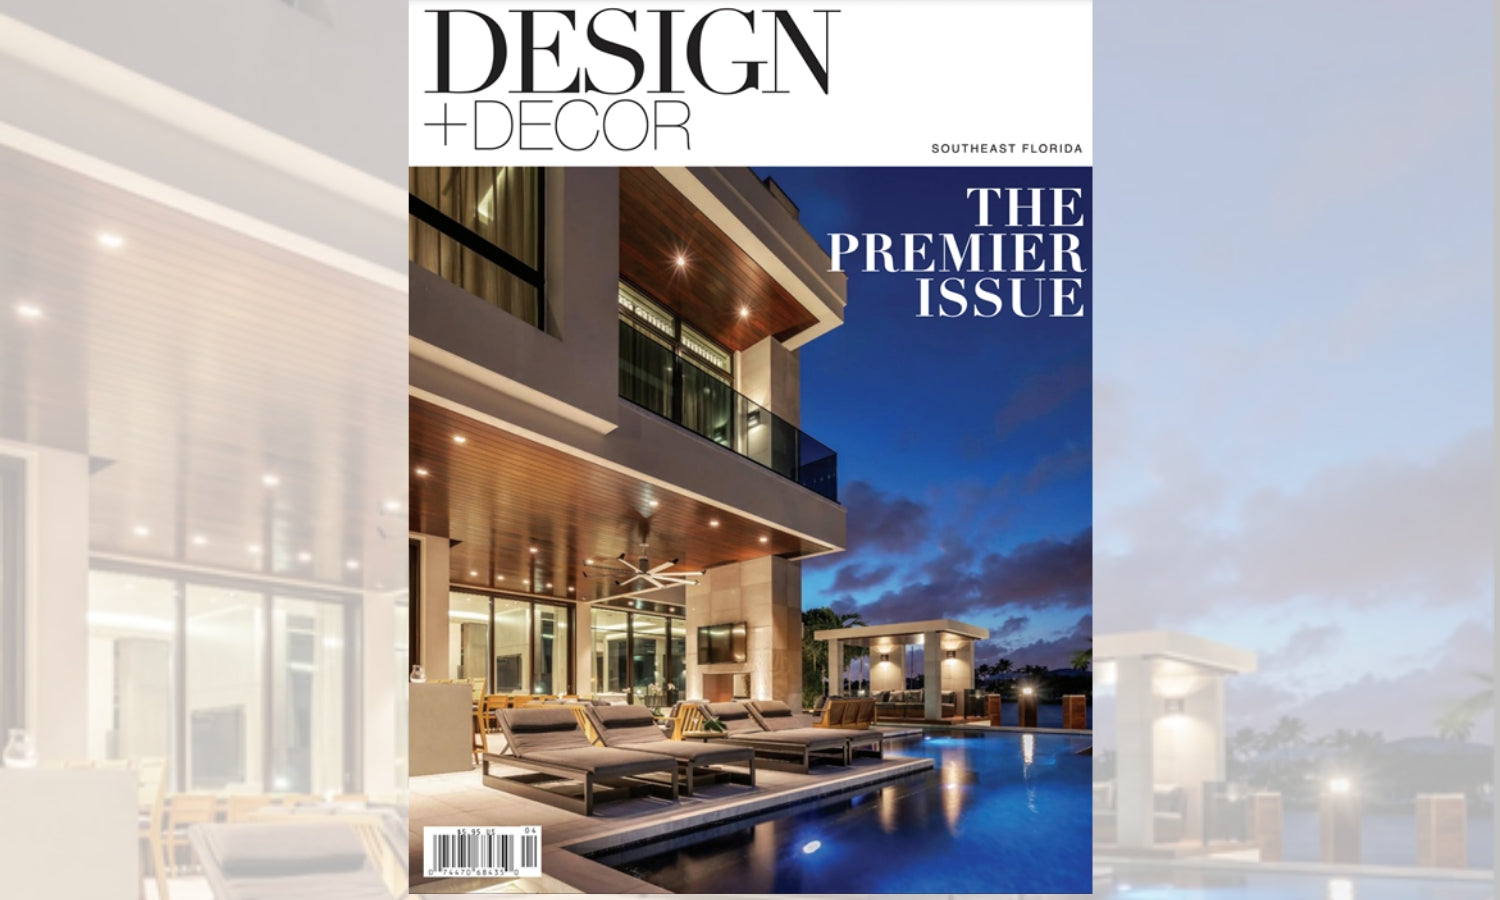 Elegant Strand featured in Design+Decor's The Premier Issue